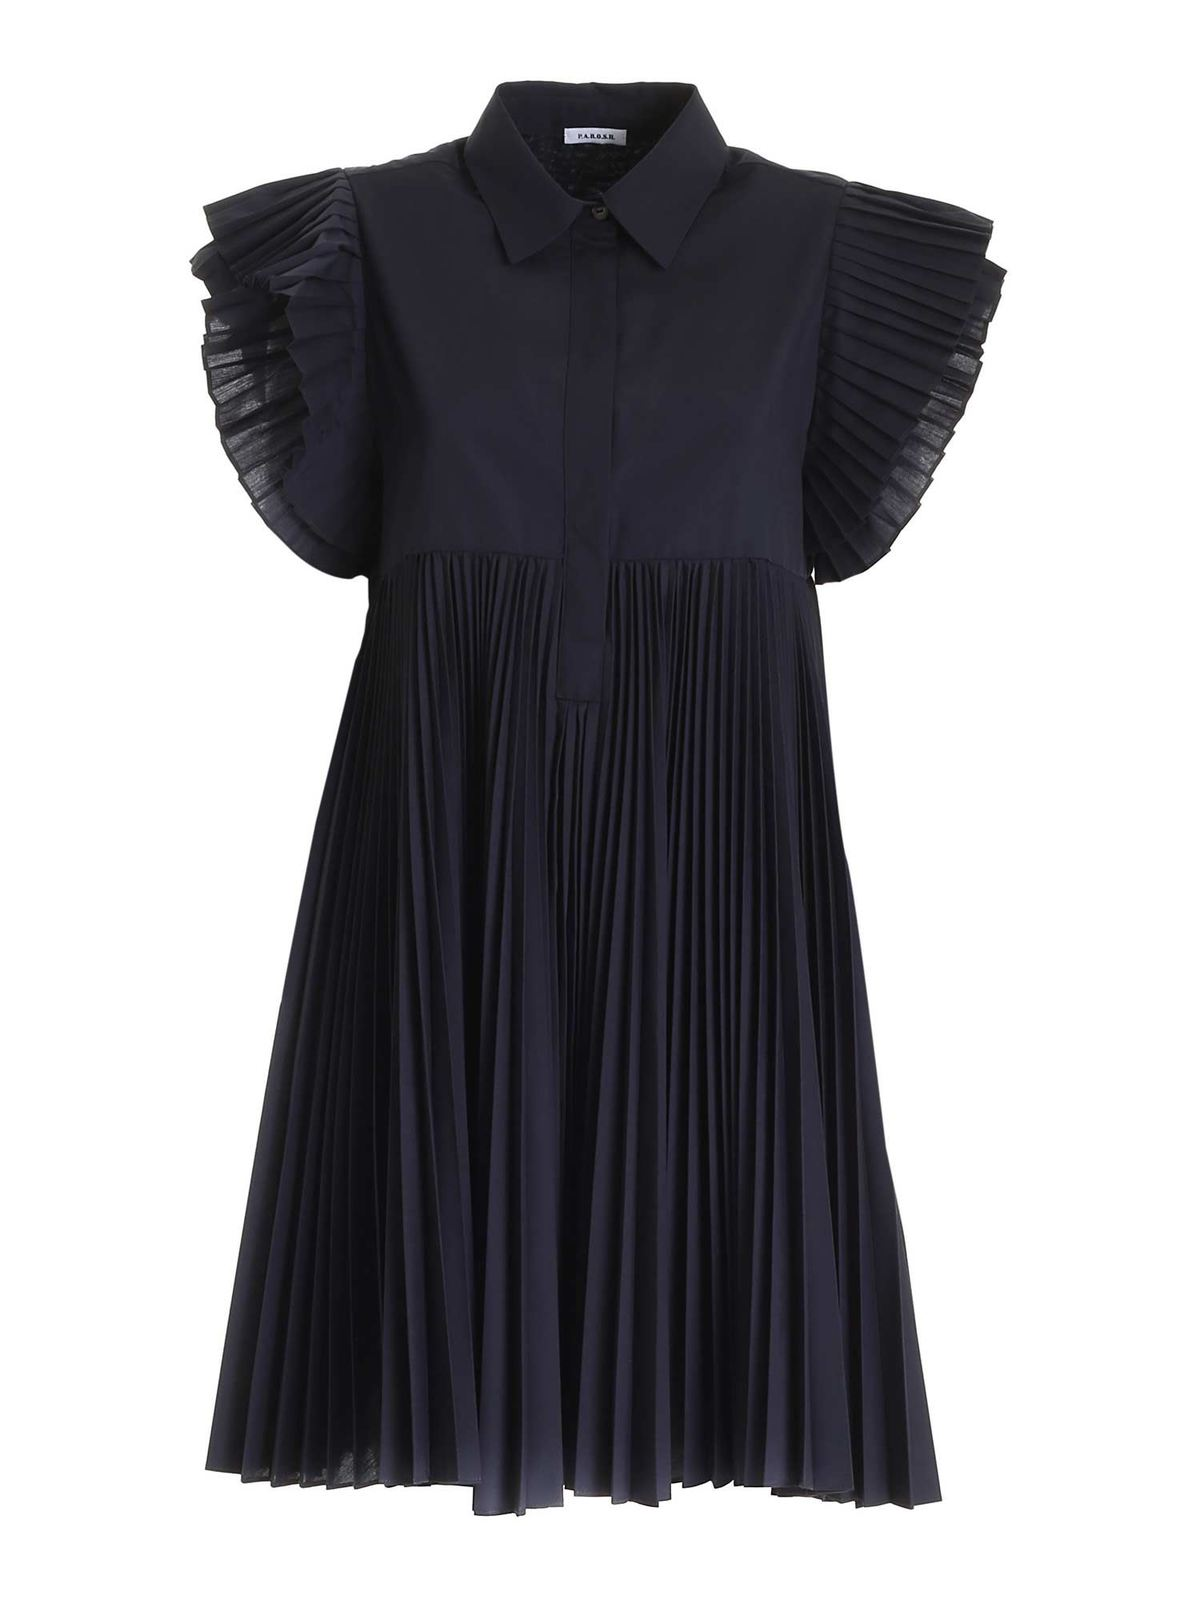 P.a.r.o.s.h. PLEATED DETAILS DRESS IN BLUE